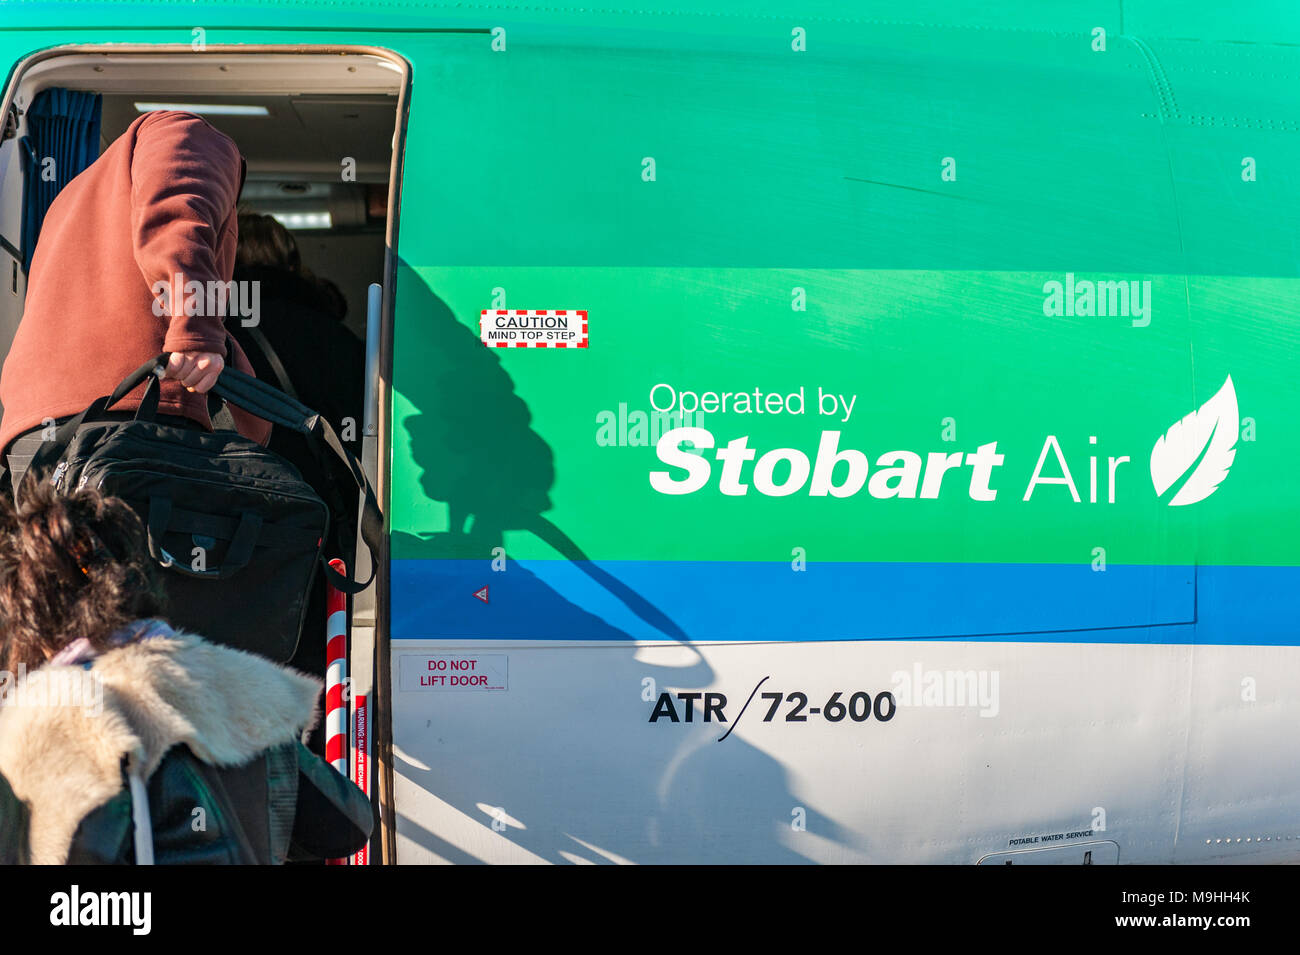 Passengers board an Aer Lingus/Stobart Air ATR 72-600 aircraft at Birmingham Airport heading to Cork, Ireland with copy space. Stock Photo